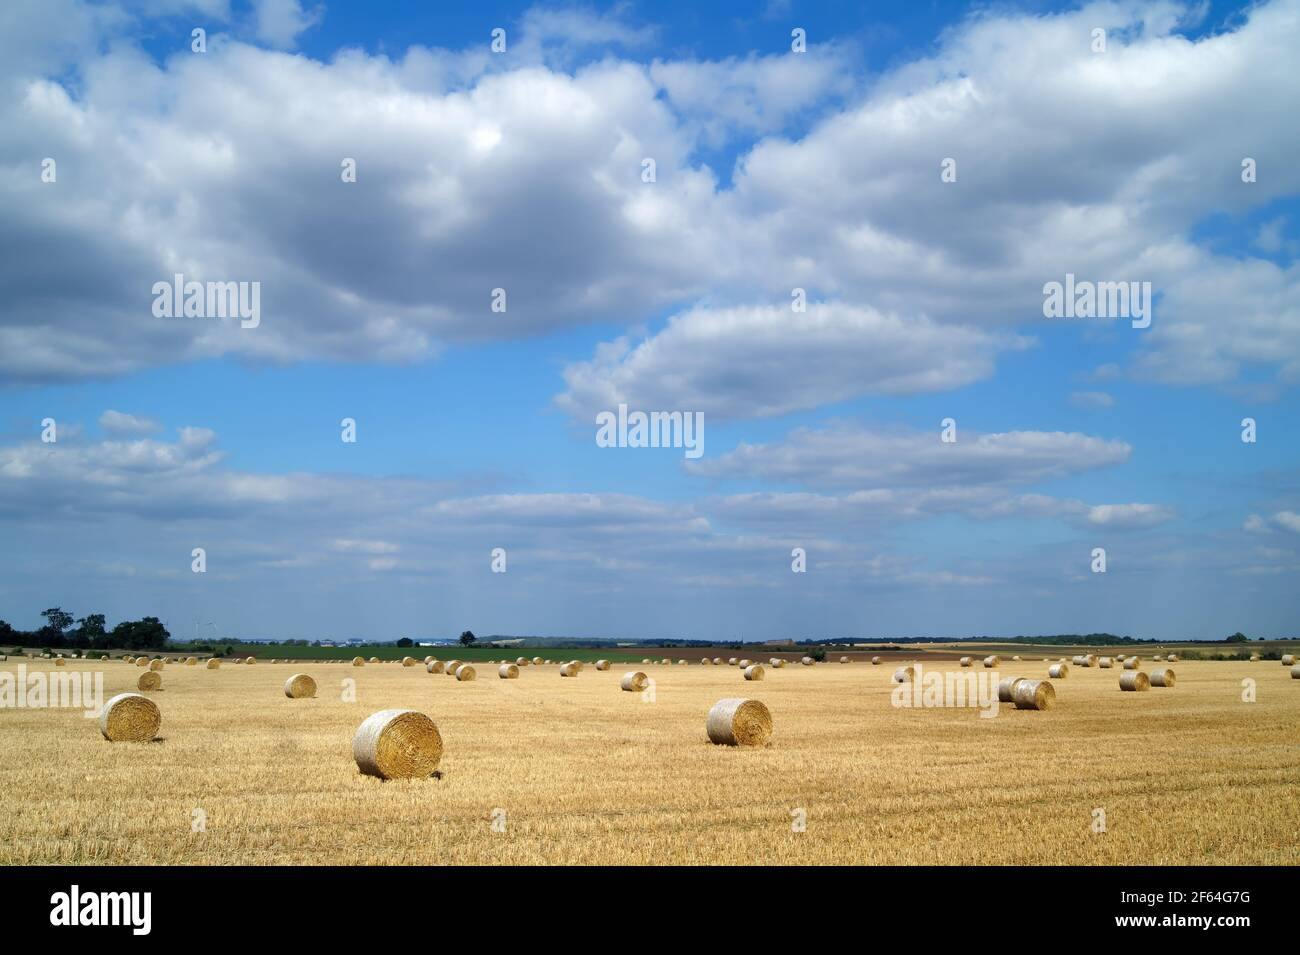 UK,South Yorkshire,Doncaster,Drum Hay Bales in Field near High Melton Stock Photo